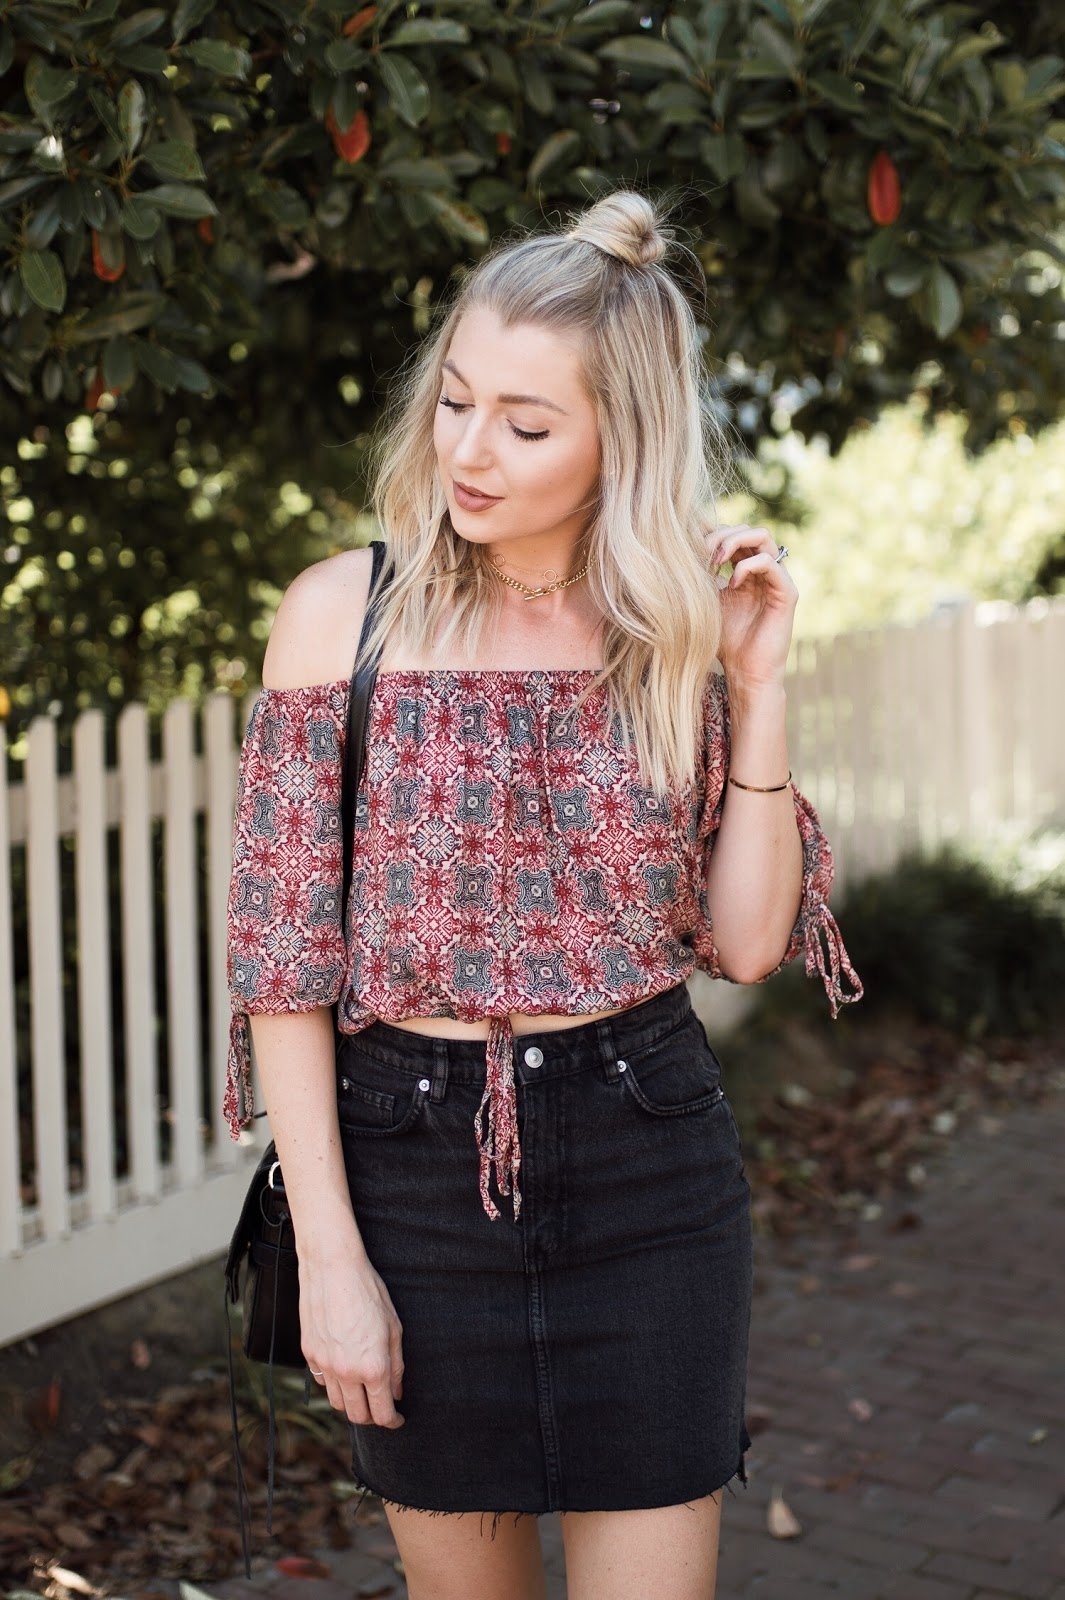 black denim mini skirt with an off-the-shoulder top